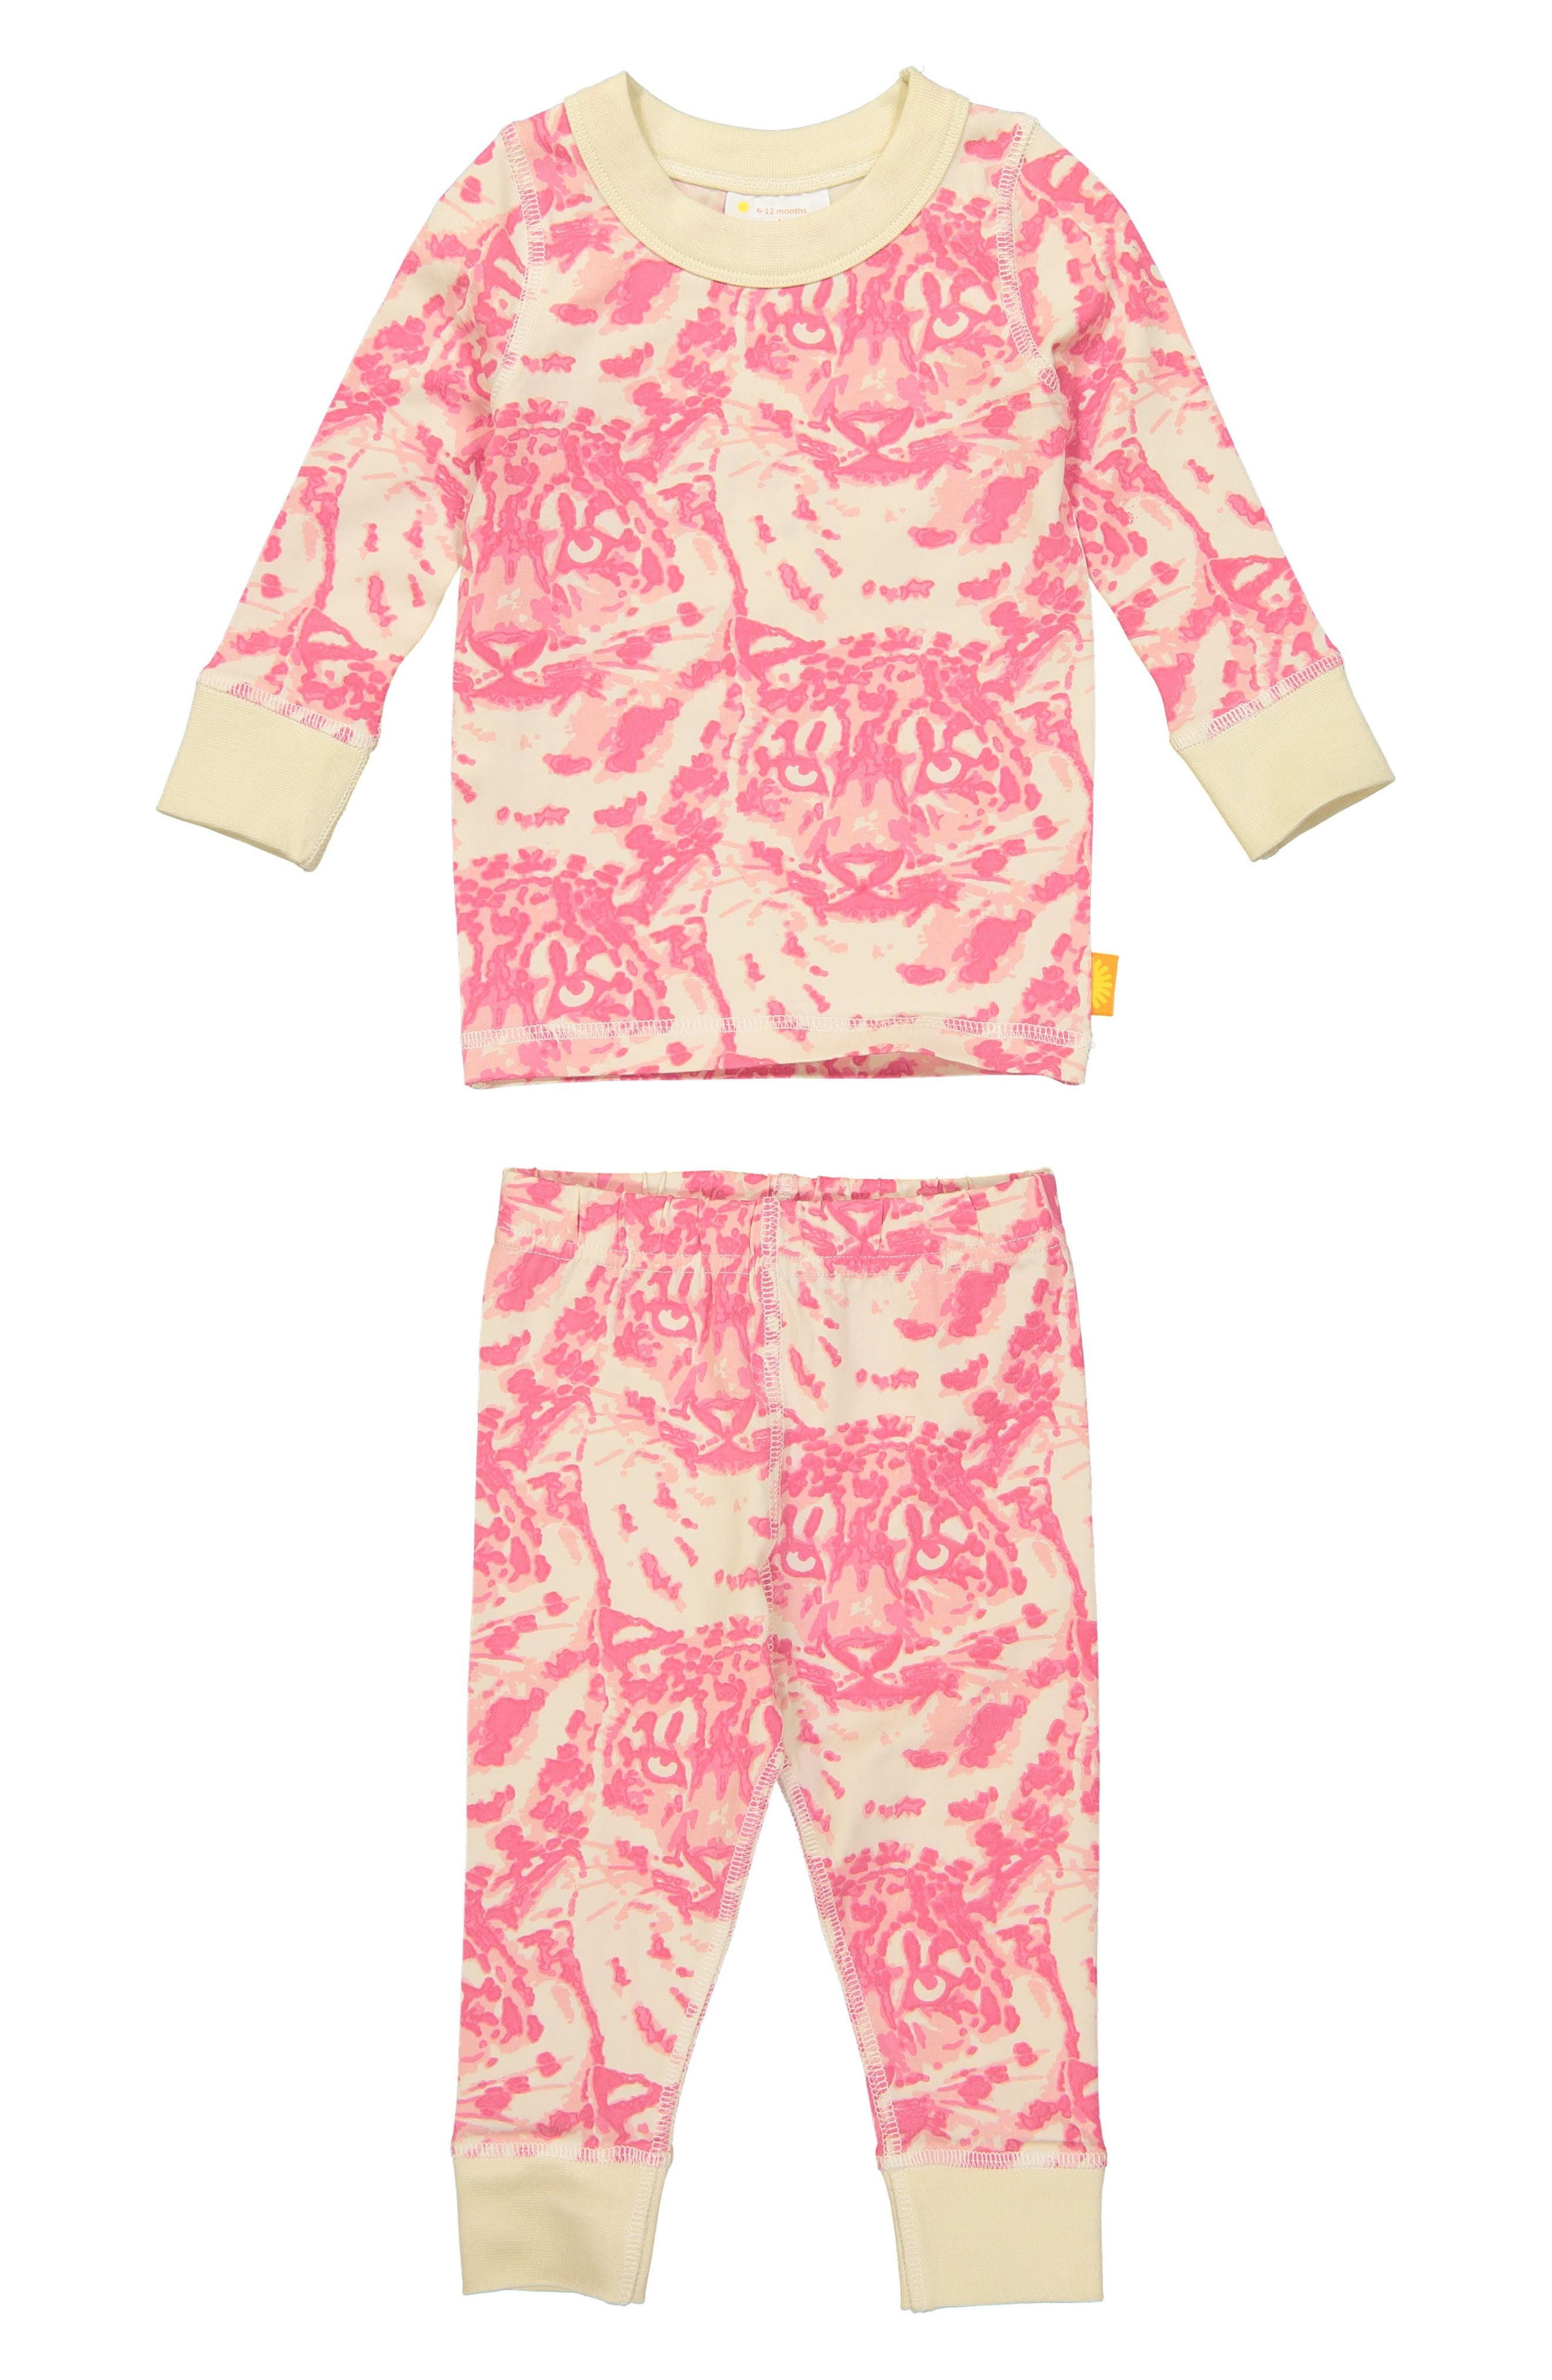 Infant Girls Masala Baby Cat Camo Organic Cotton Fitted TwoPiece Pajamas Size 612M  Pink